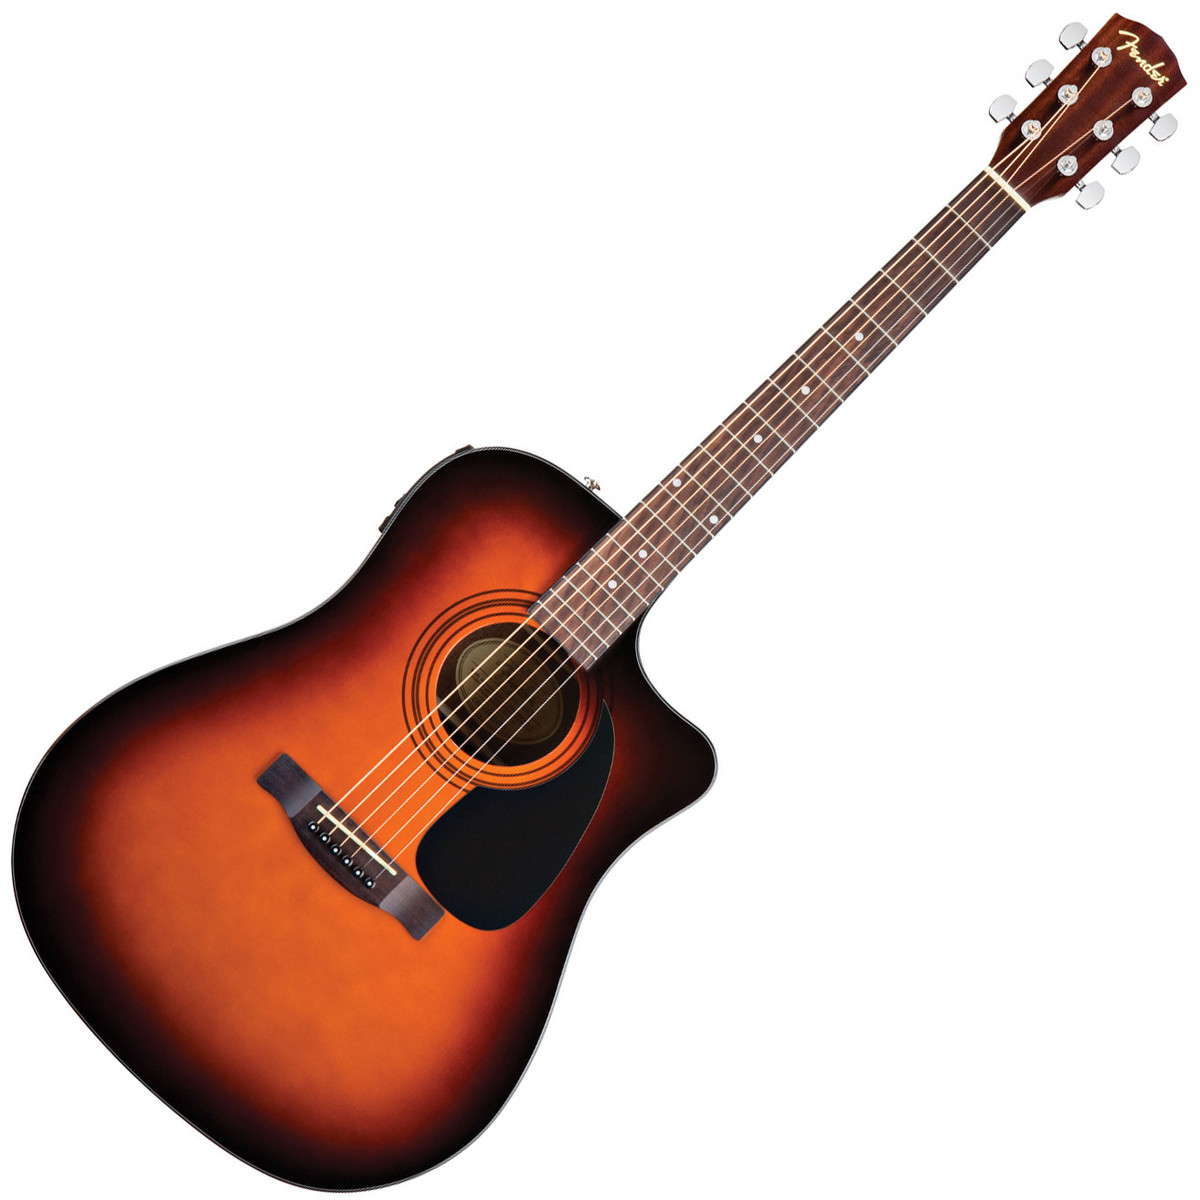 fender cd 60ce guitare electro acoustique sunburst. Black Bedroom Furniture Sets. Home Design Ideas